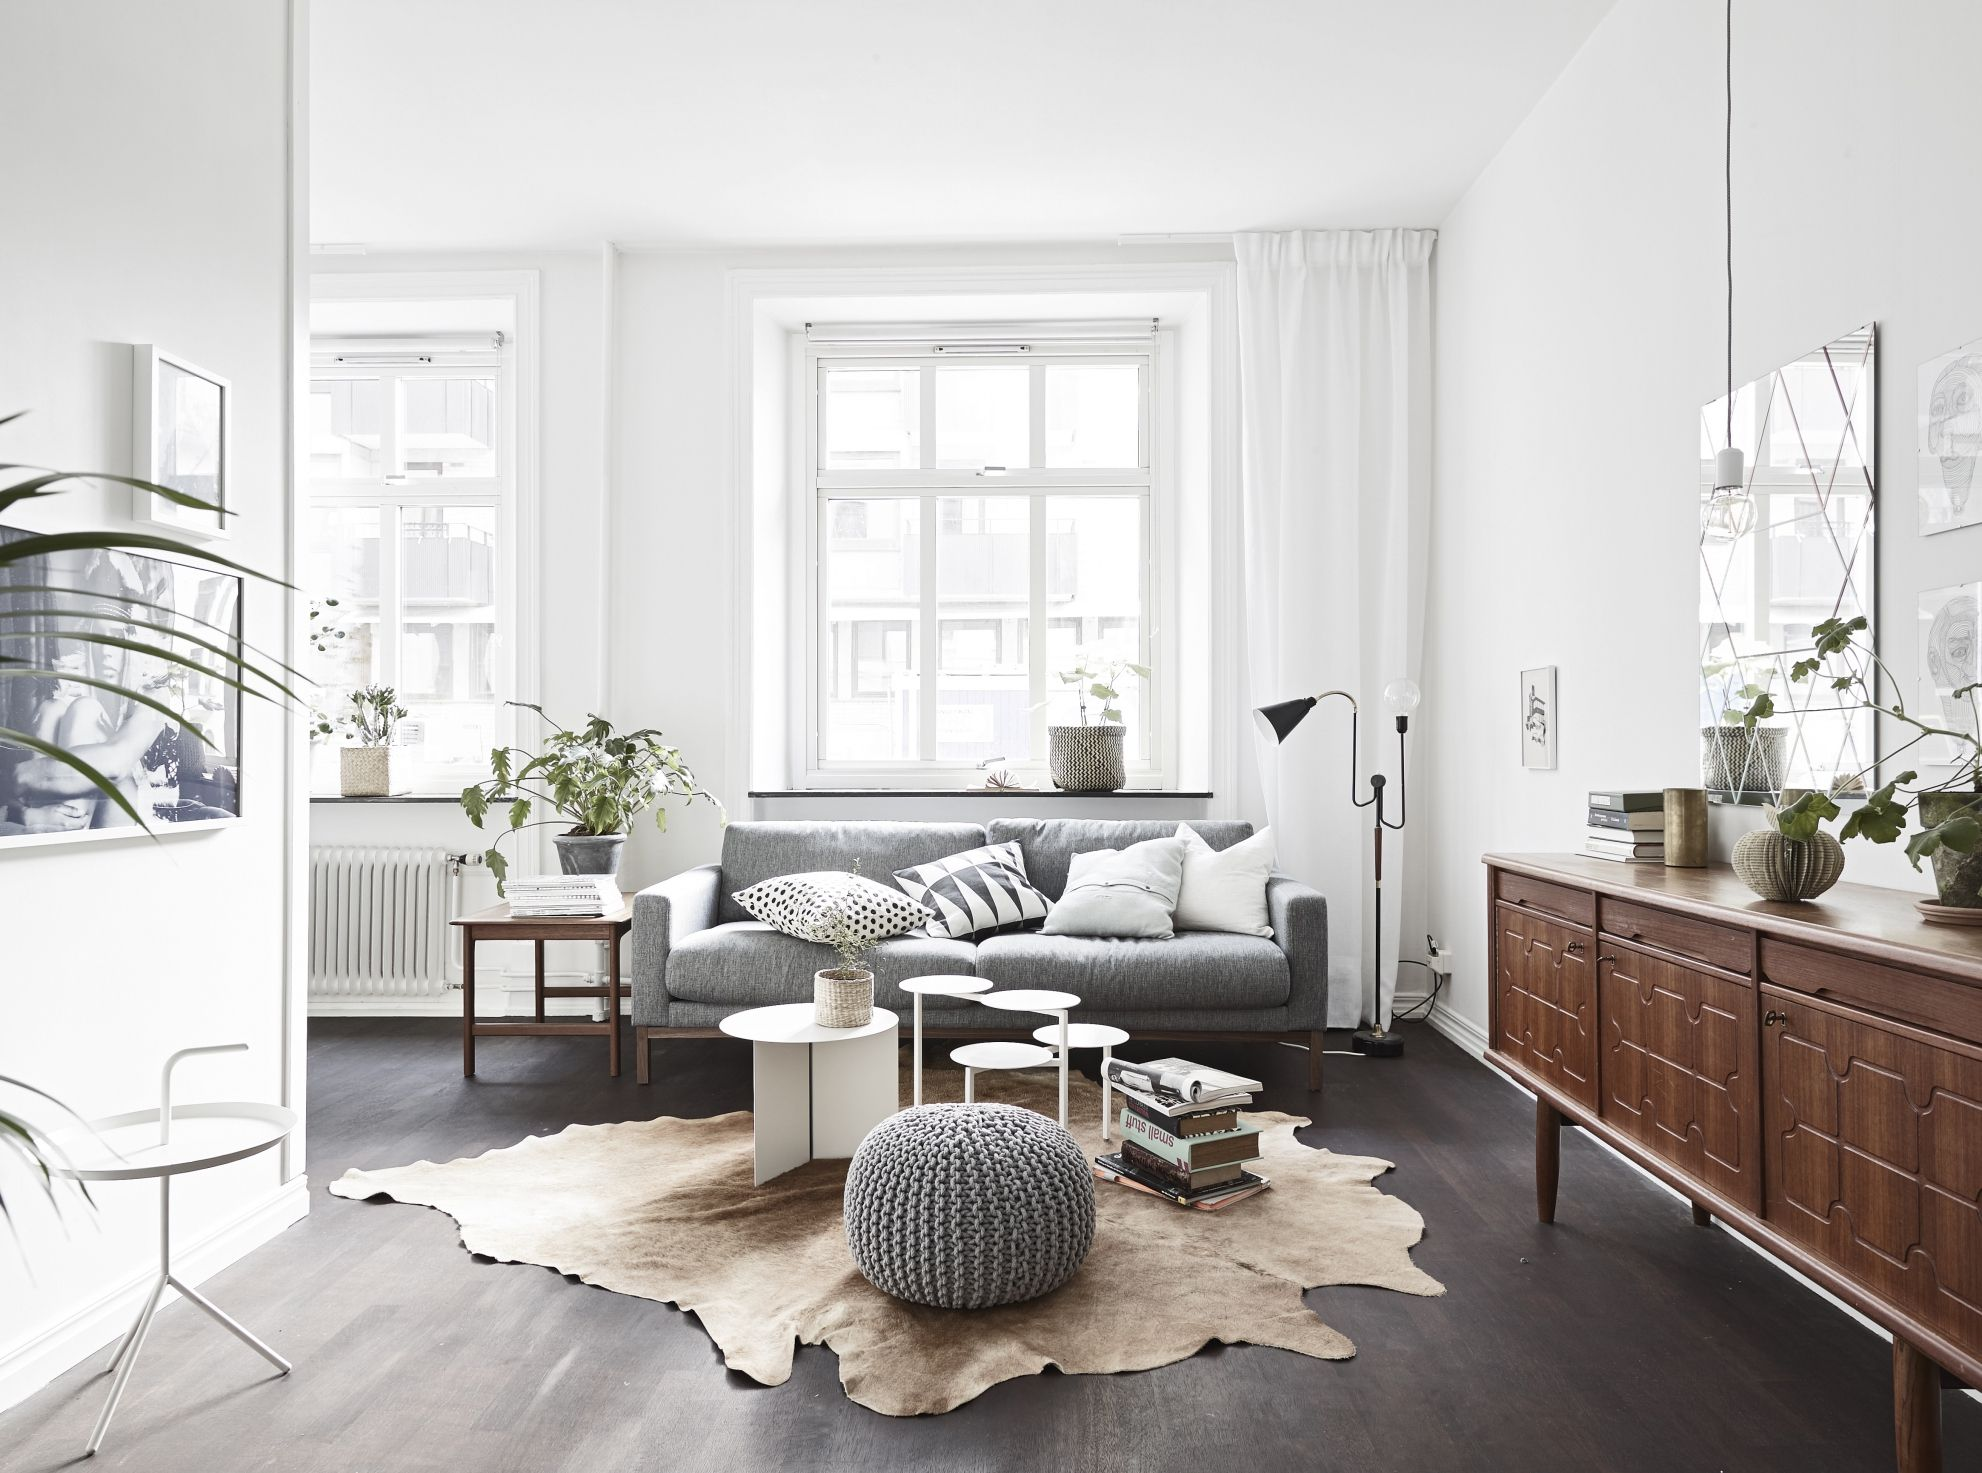 Appartement Scandinave Deco Appartement Style Scandinave Design Scandinave